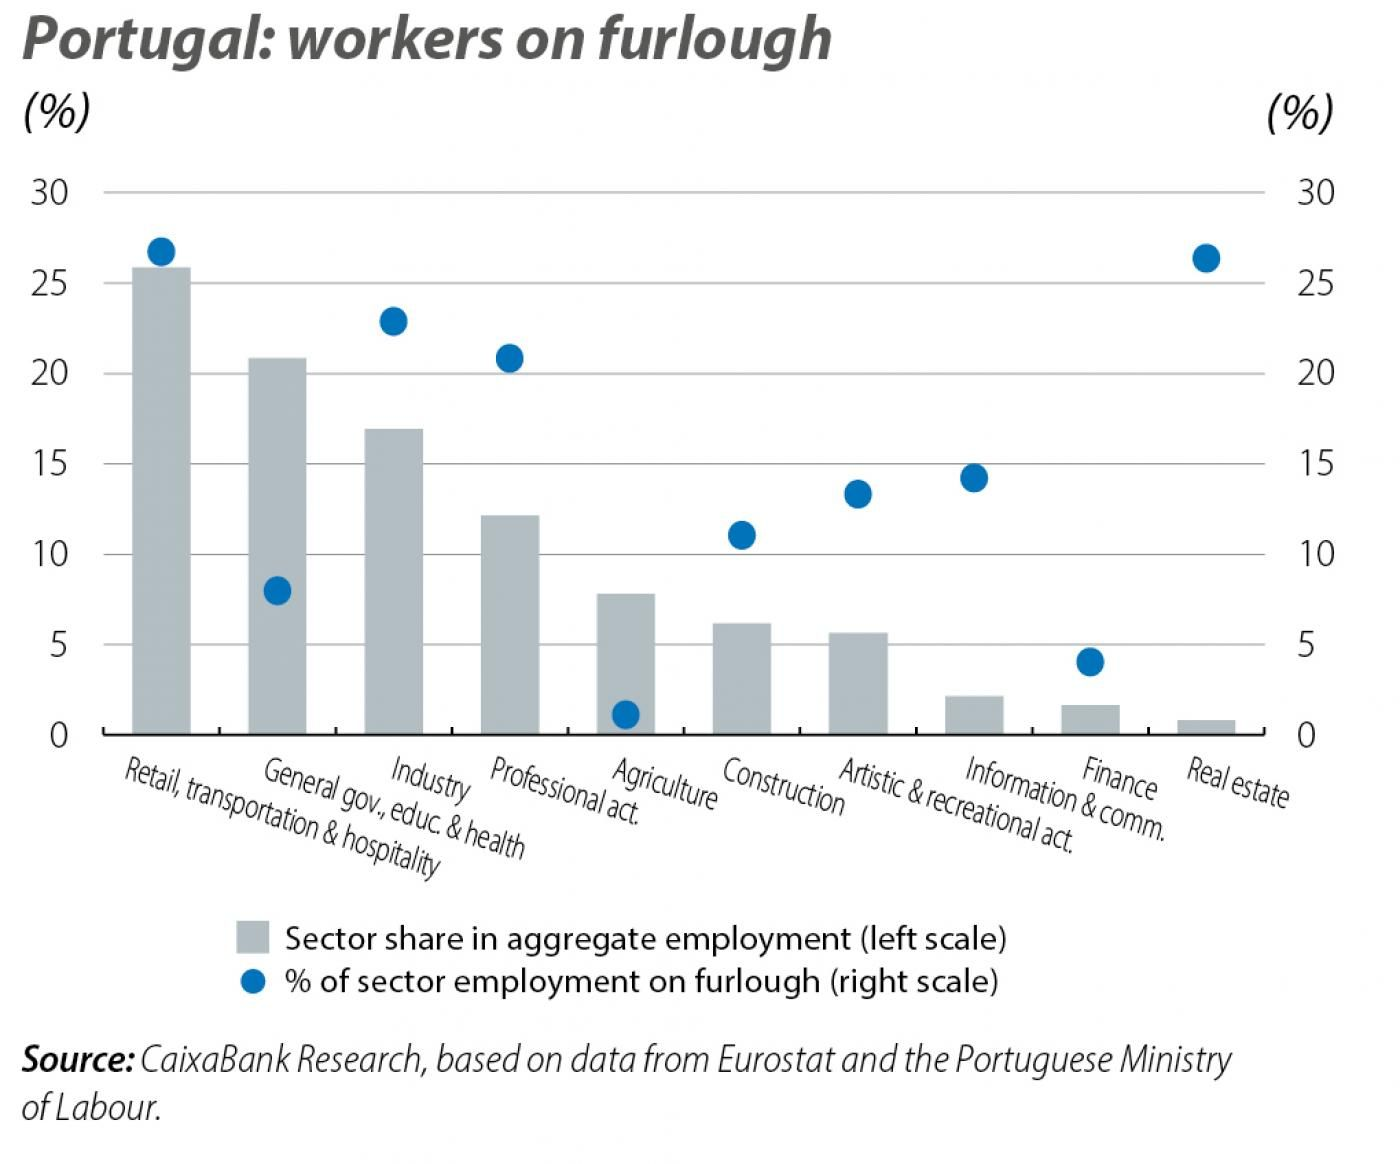 Portugal: workers on furlough